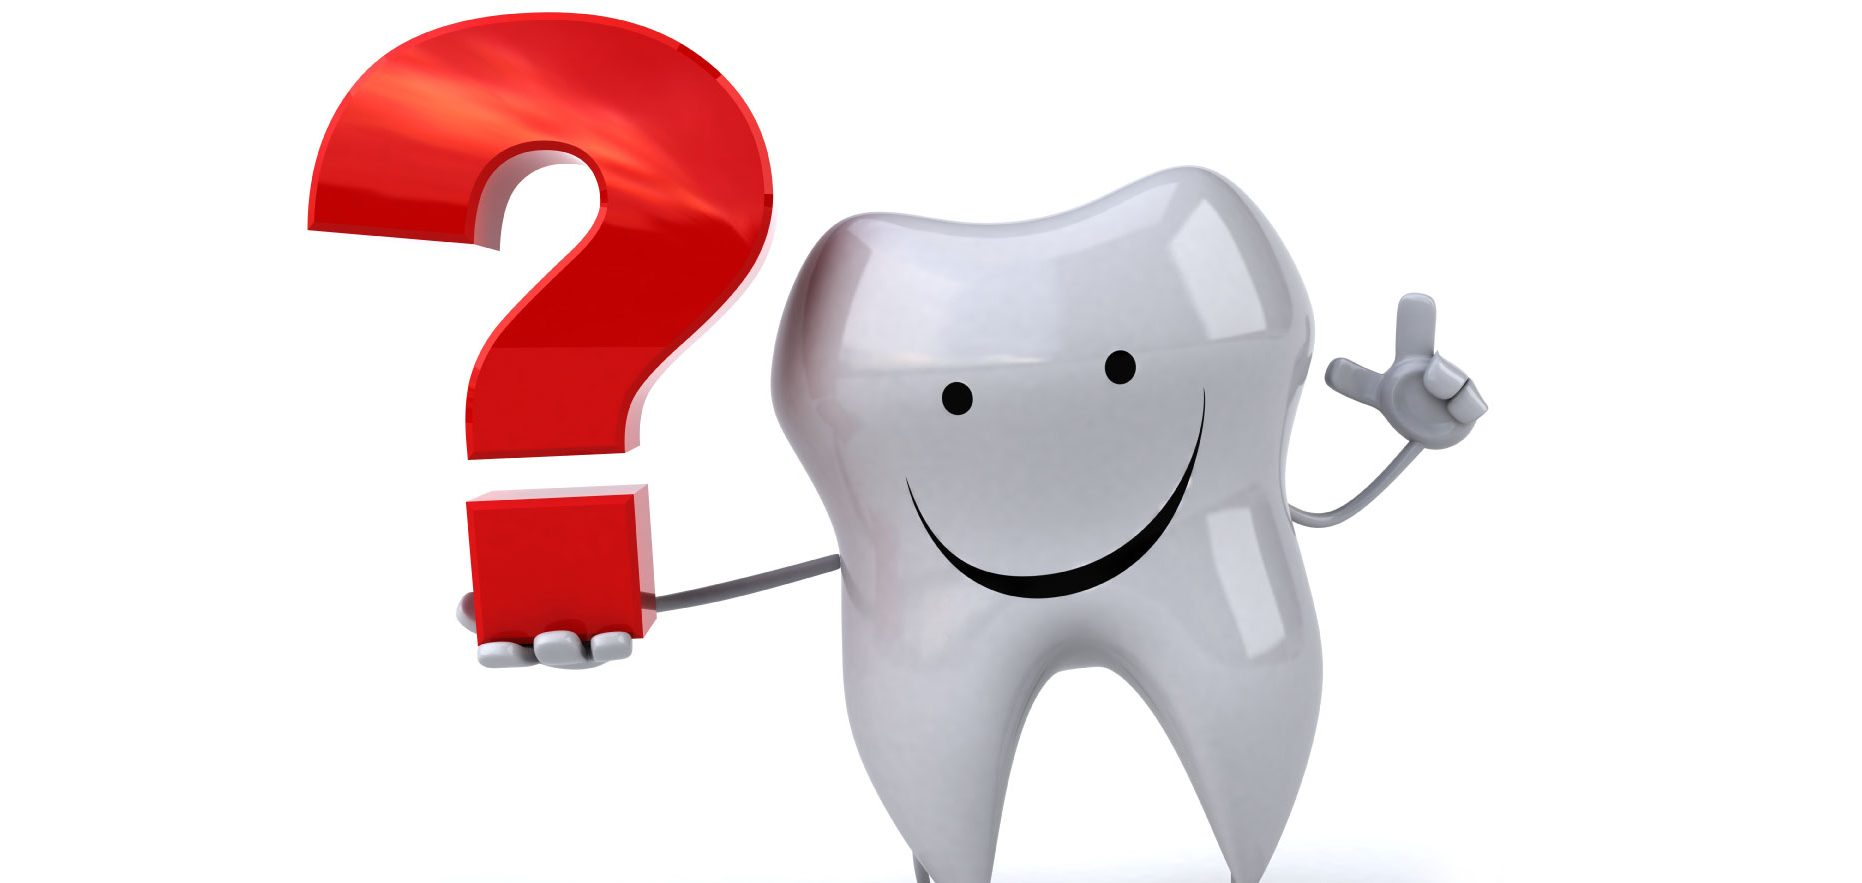 Get your Dental Care Questions Answered and More on CountyDental.com